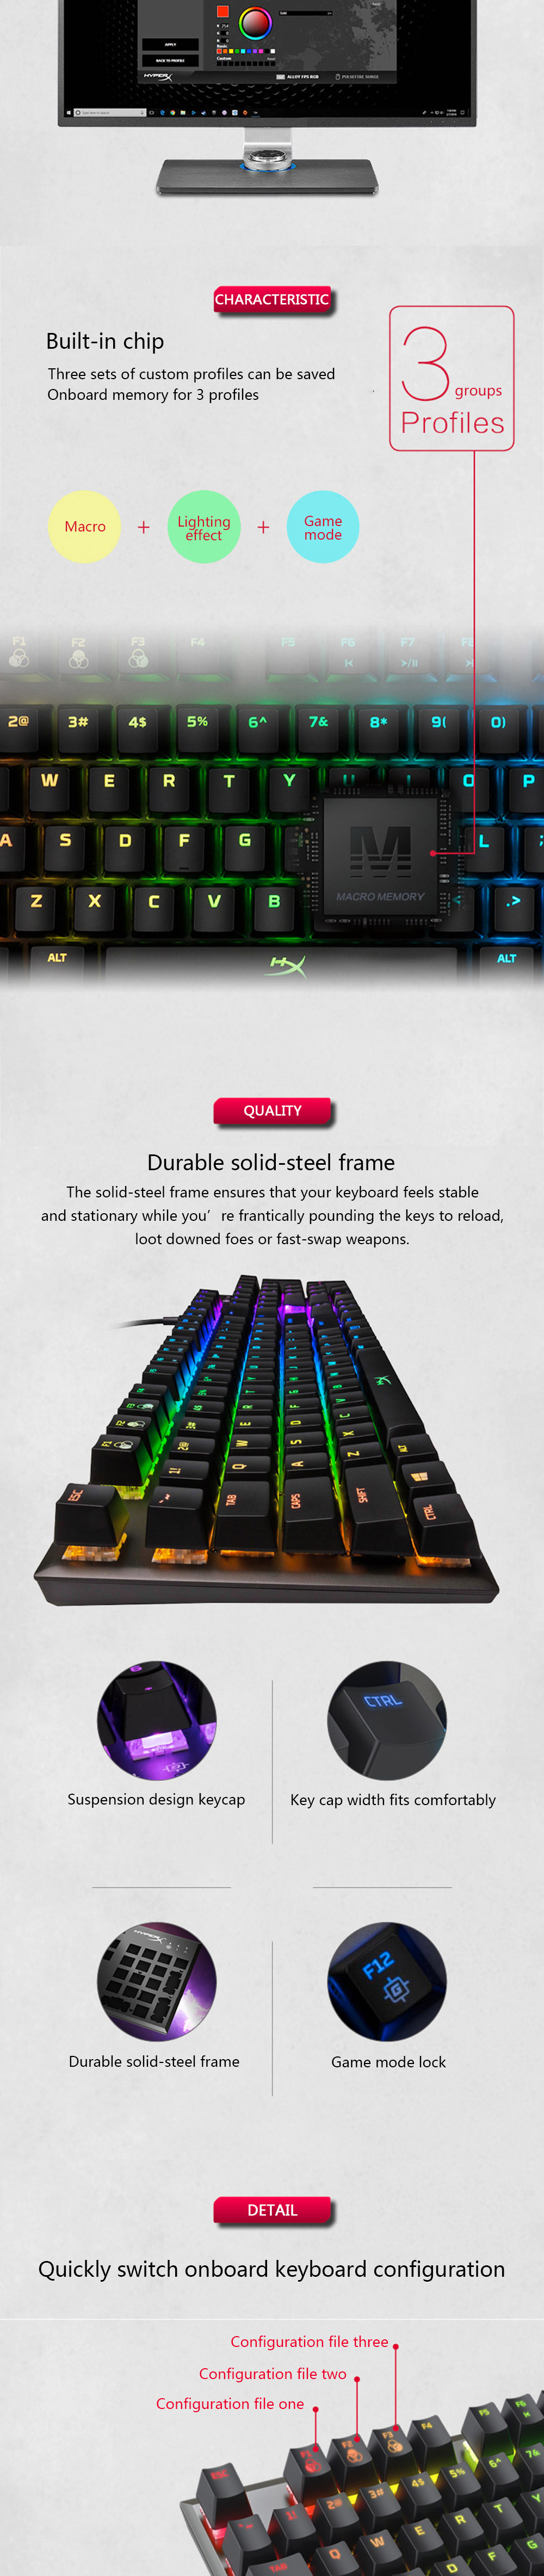 KINGSTON E-sports keyboard HyperX Alloy FPS RGB Gaming Keyboard Metal panel mechanical keyboard FPS & MOBA Gaming Keycaps